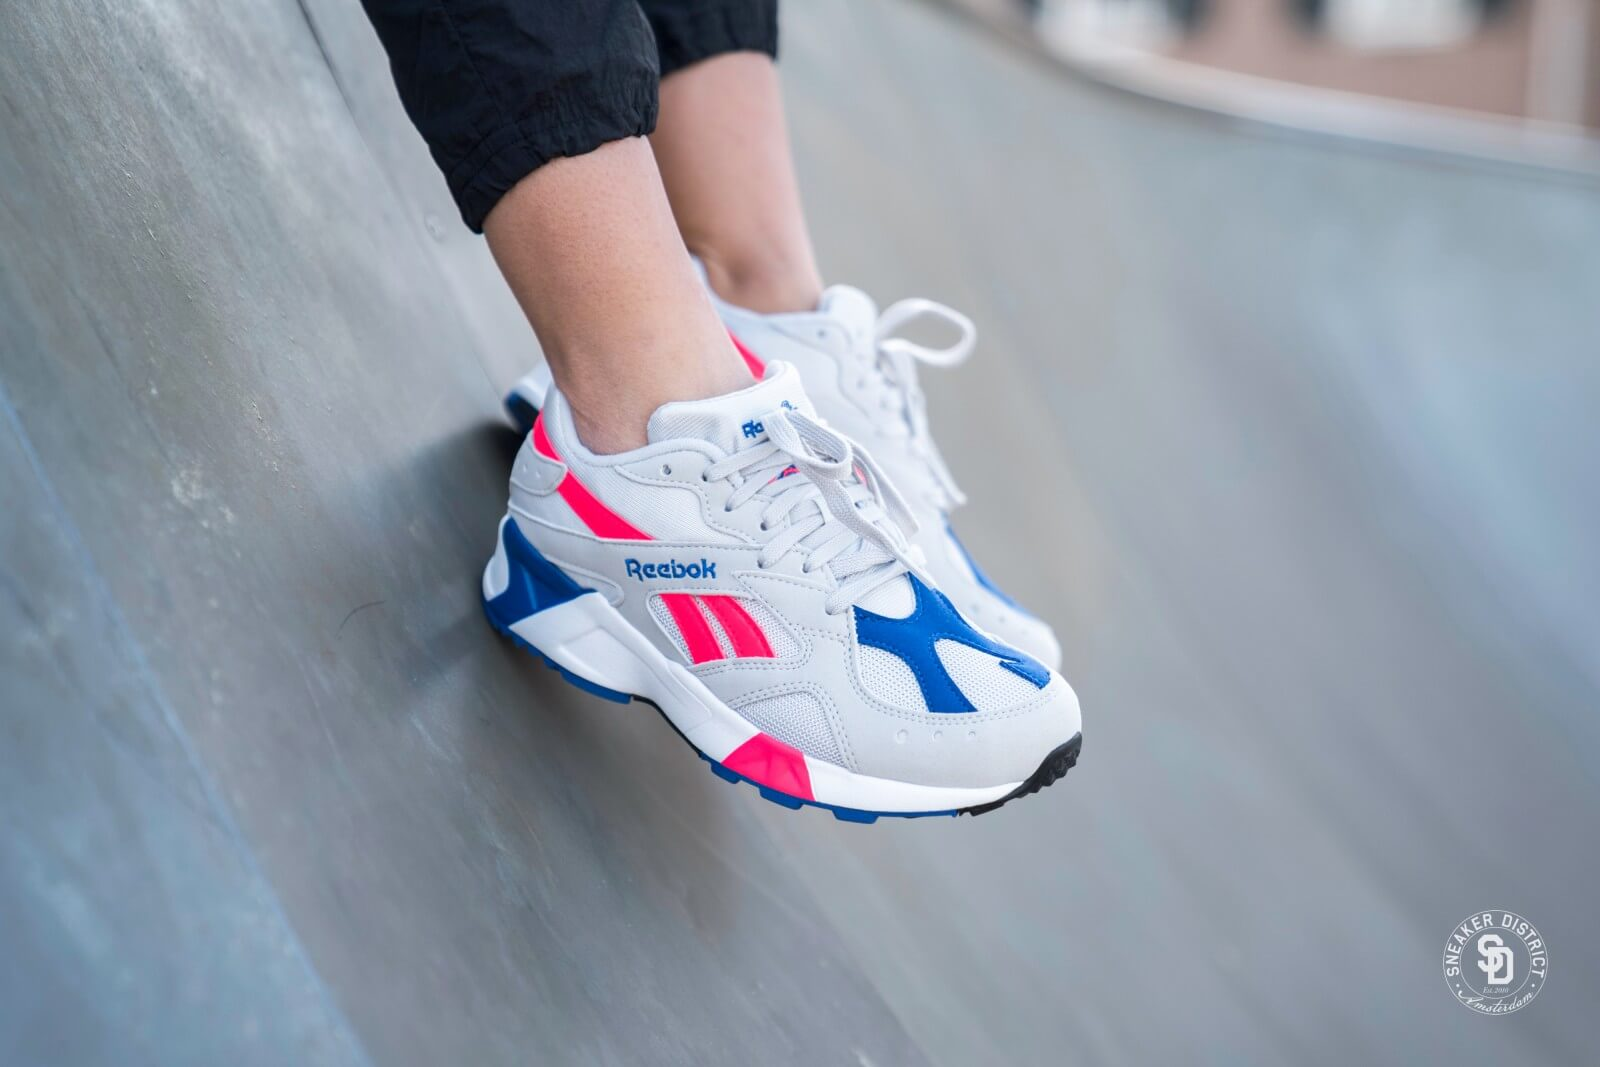 grey and pink reebok - 59% OFF